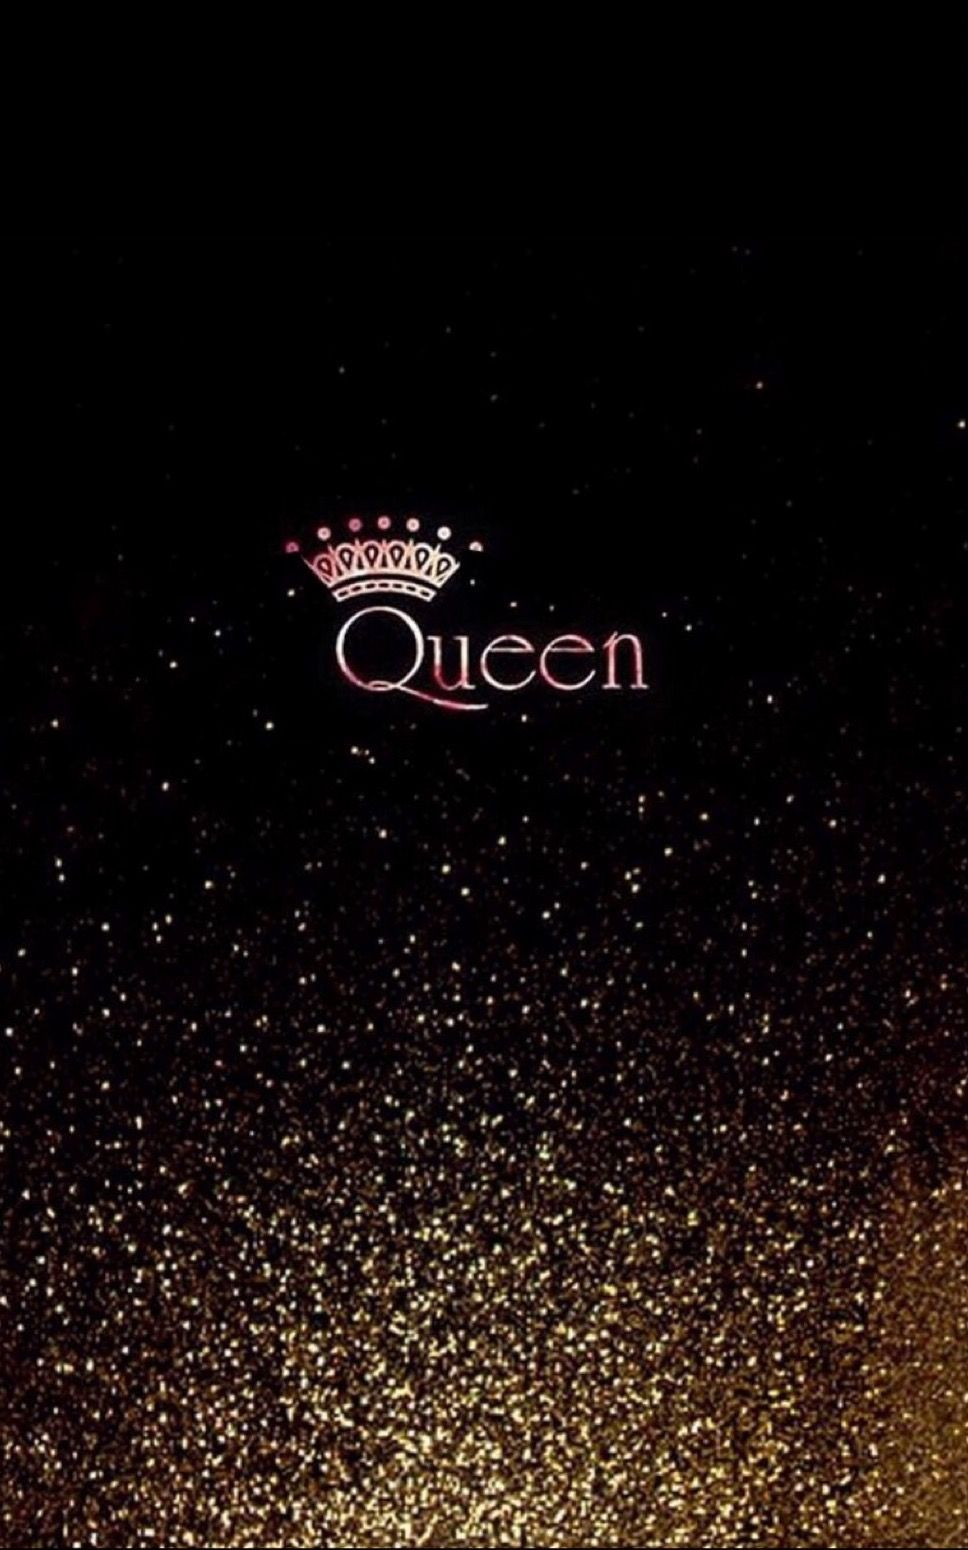 Queen Iphone Wallpapers Top Free Queen Iphone Backgrounds